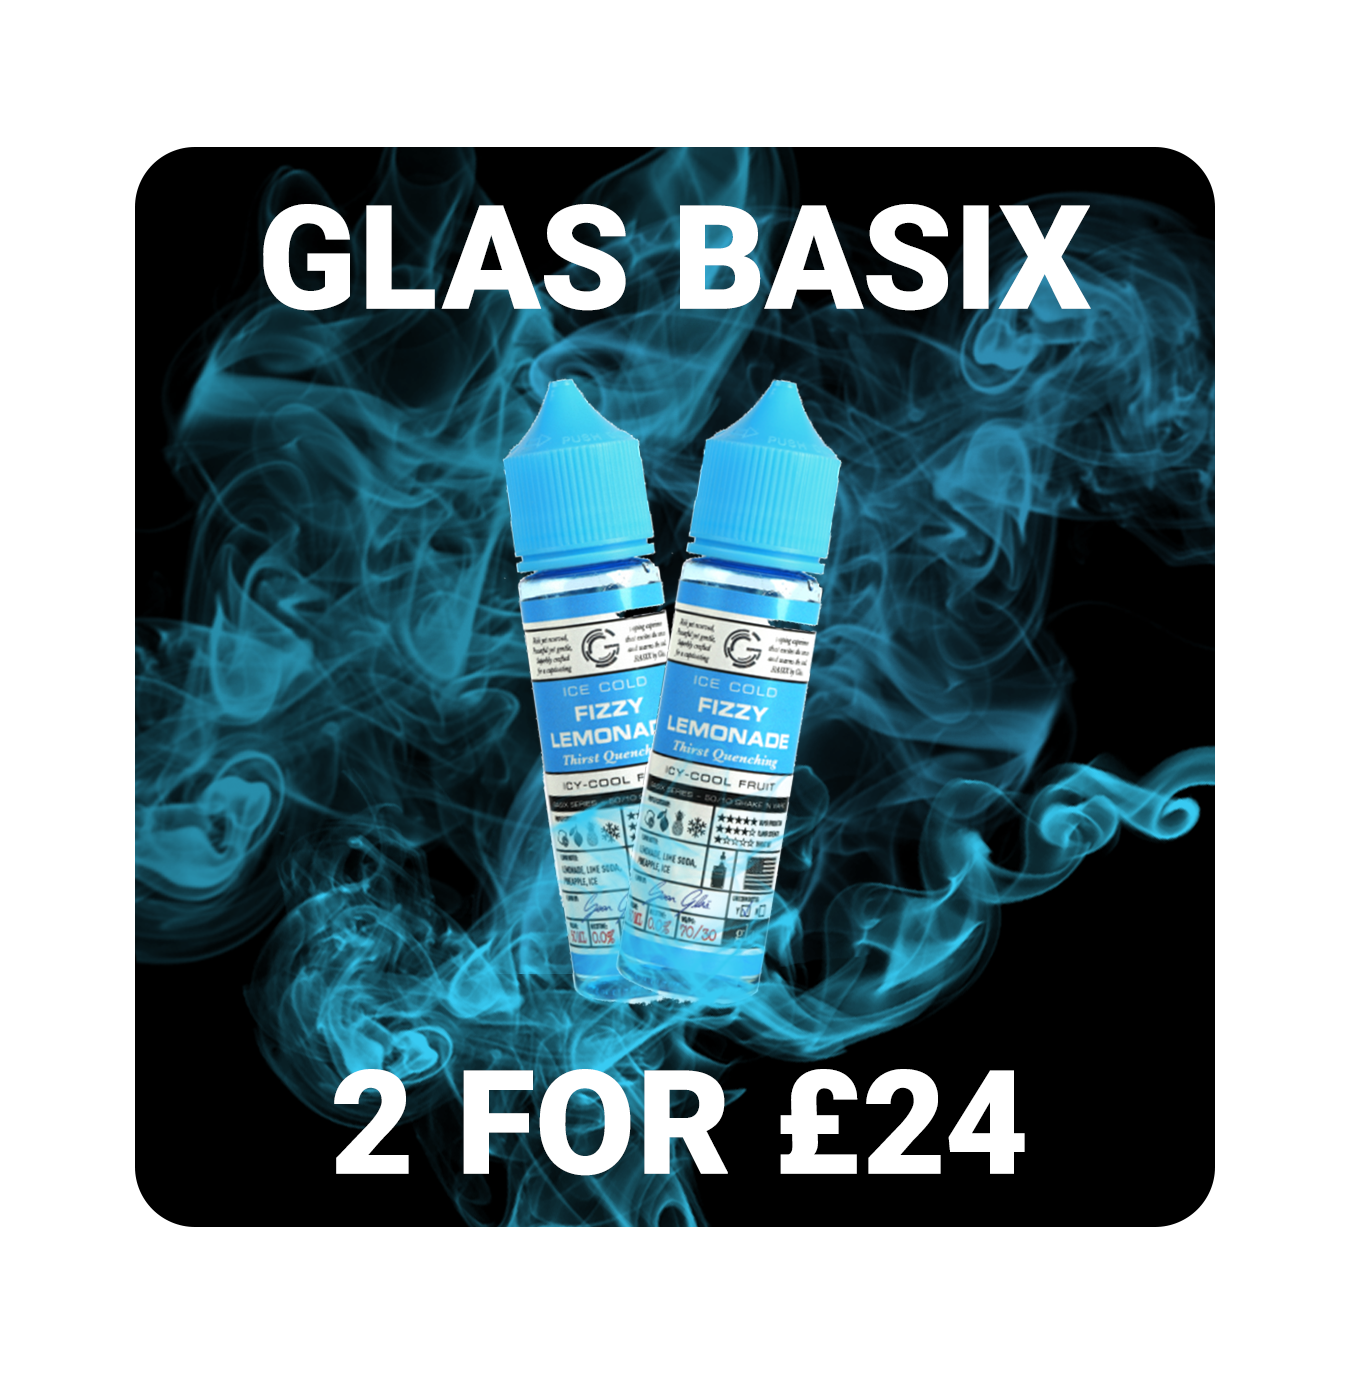 glas-basix-2-for-24